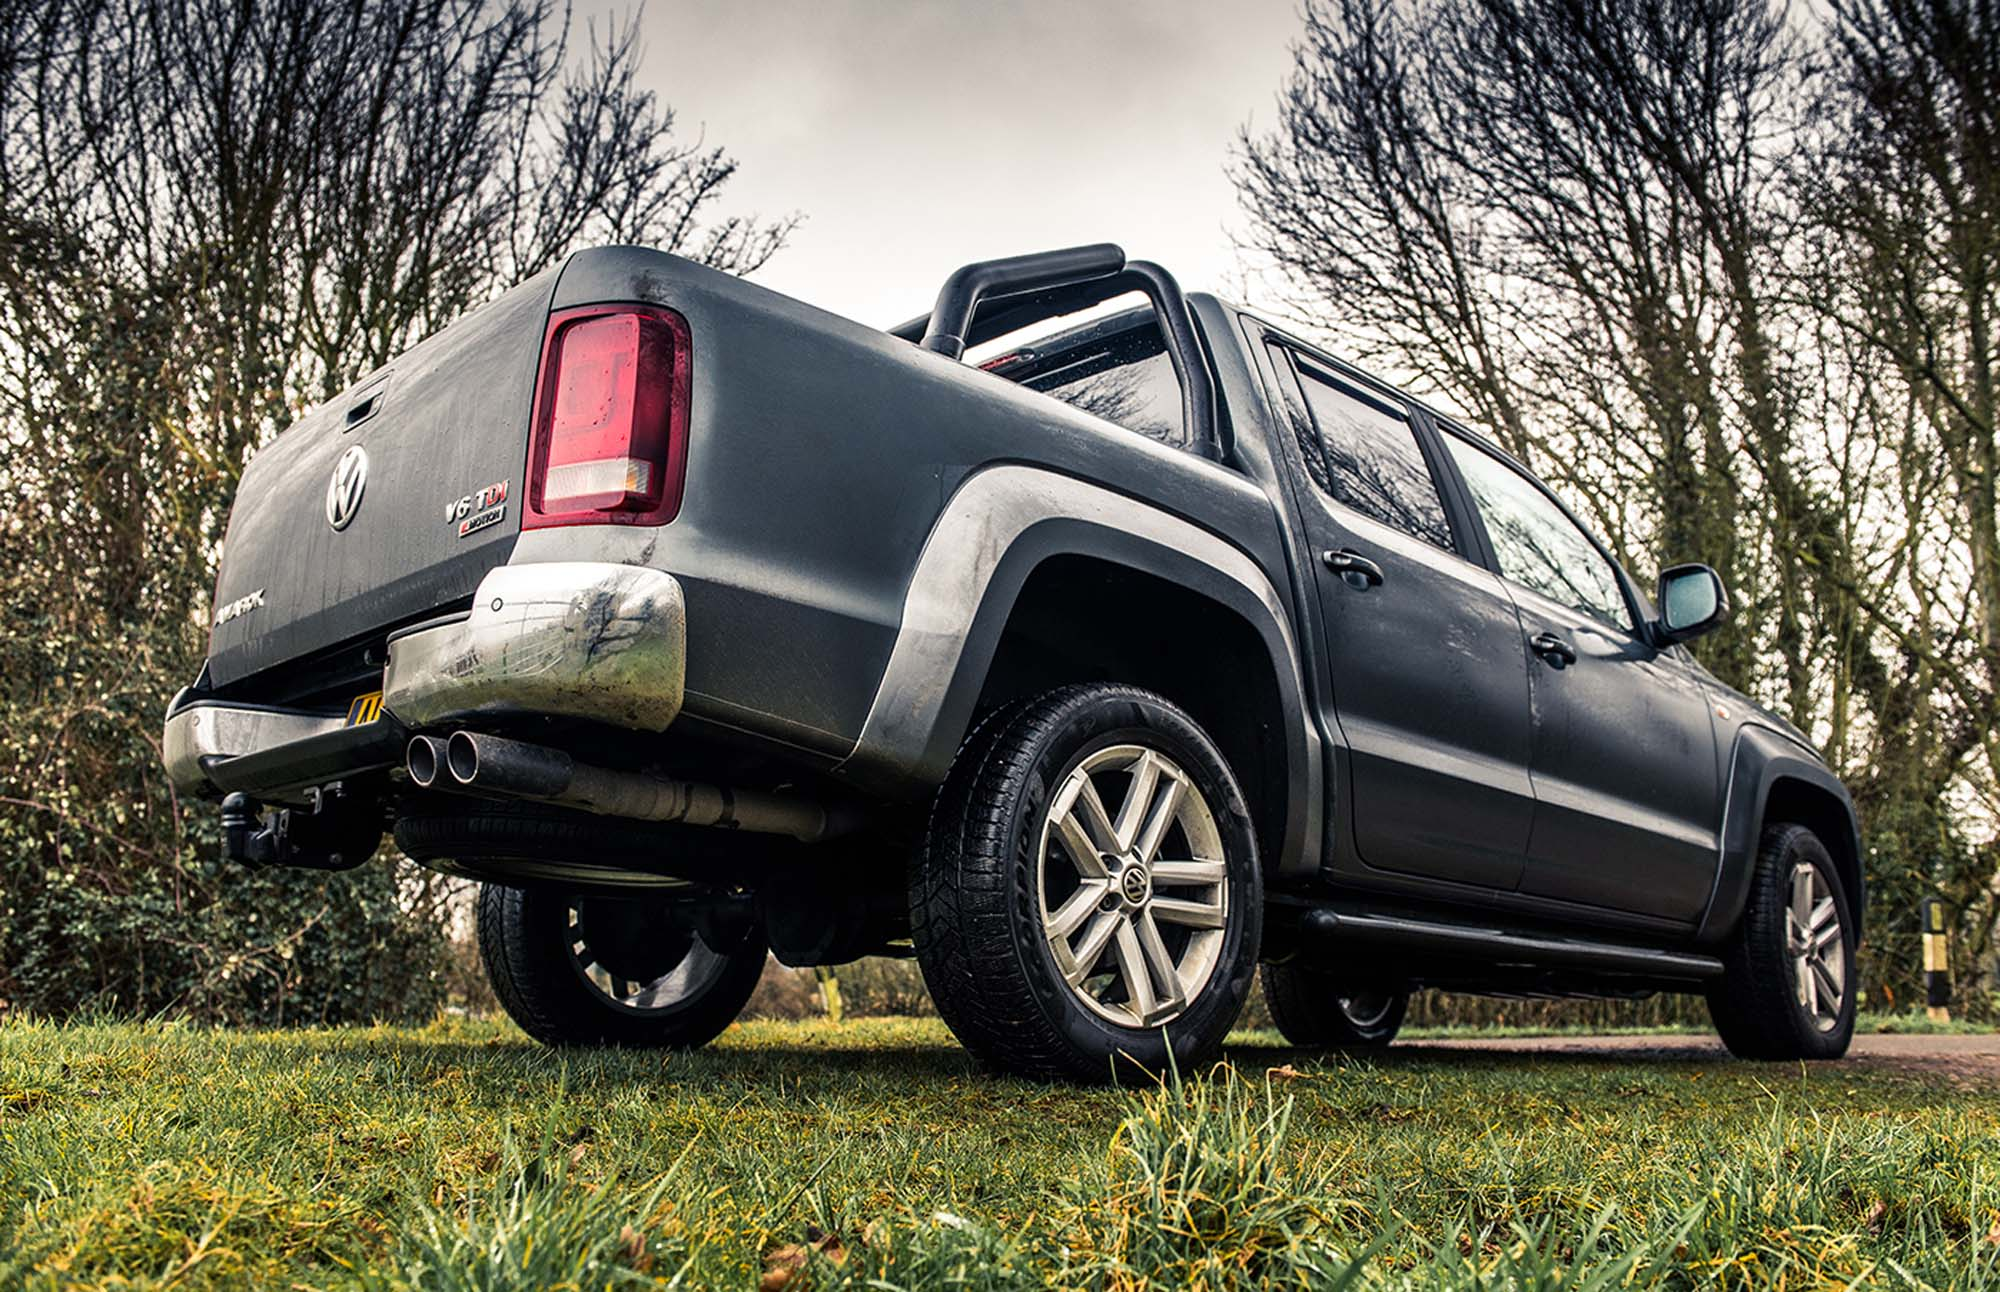 Milltek Sport Expands Range Of Stainless Steel Exhaust Systems To Include VW Amarok 3.0 V6 TDI (204 & 224PS)